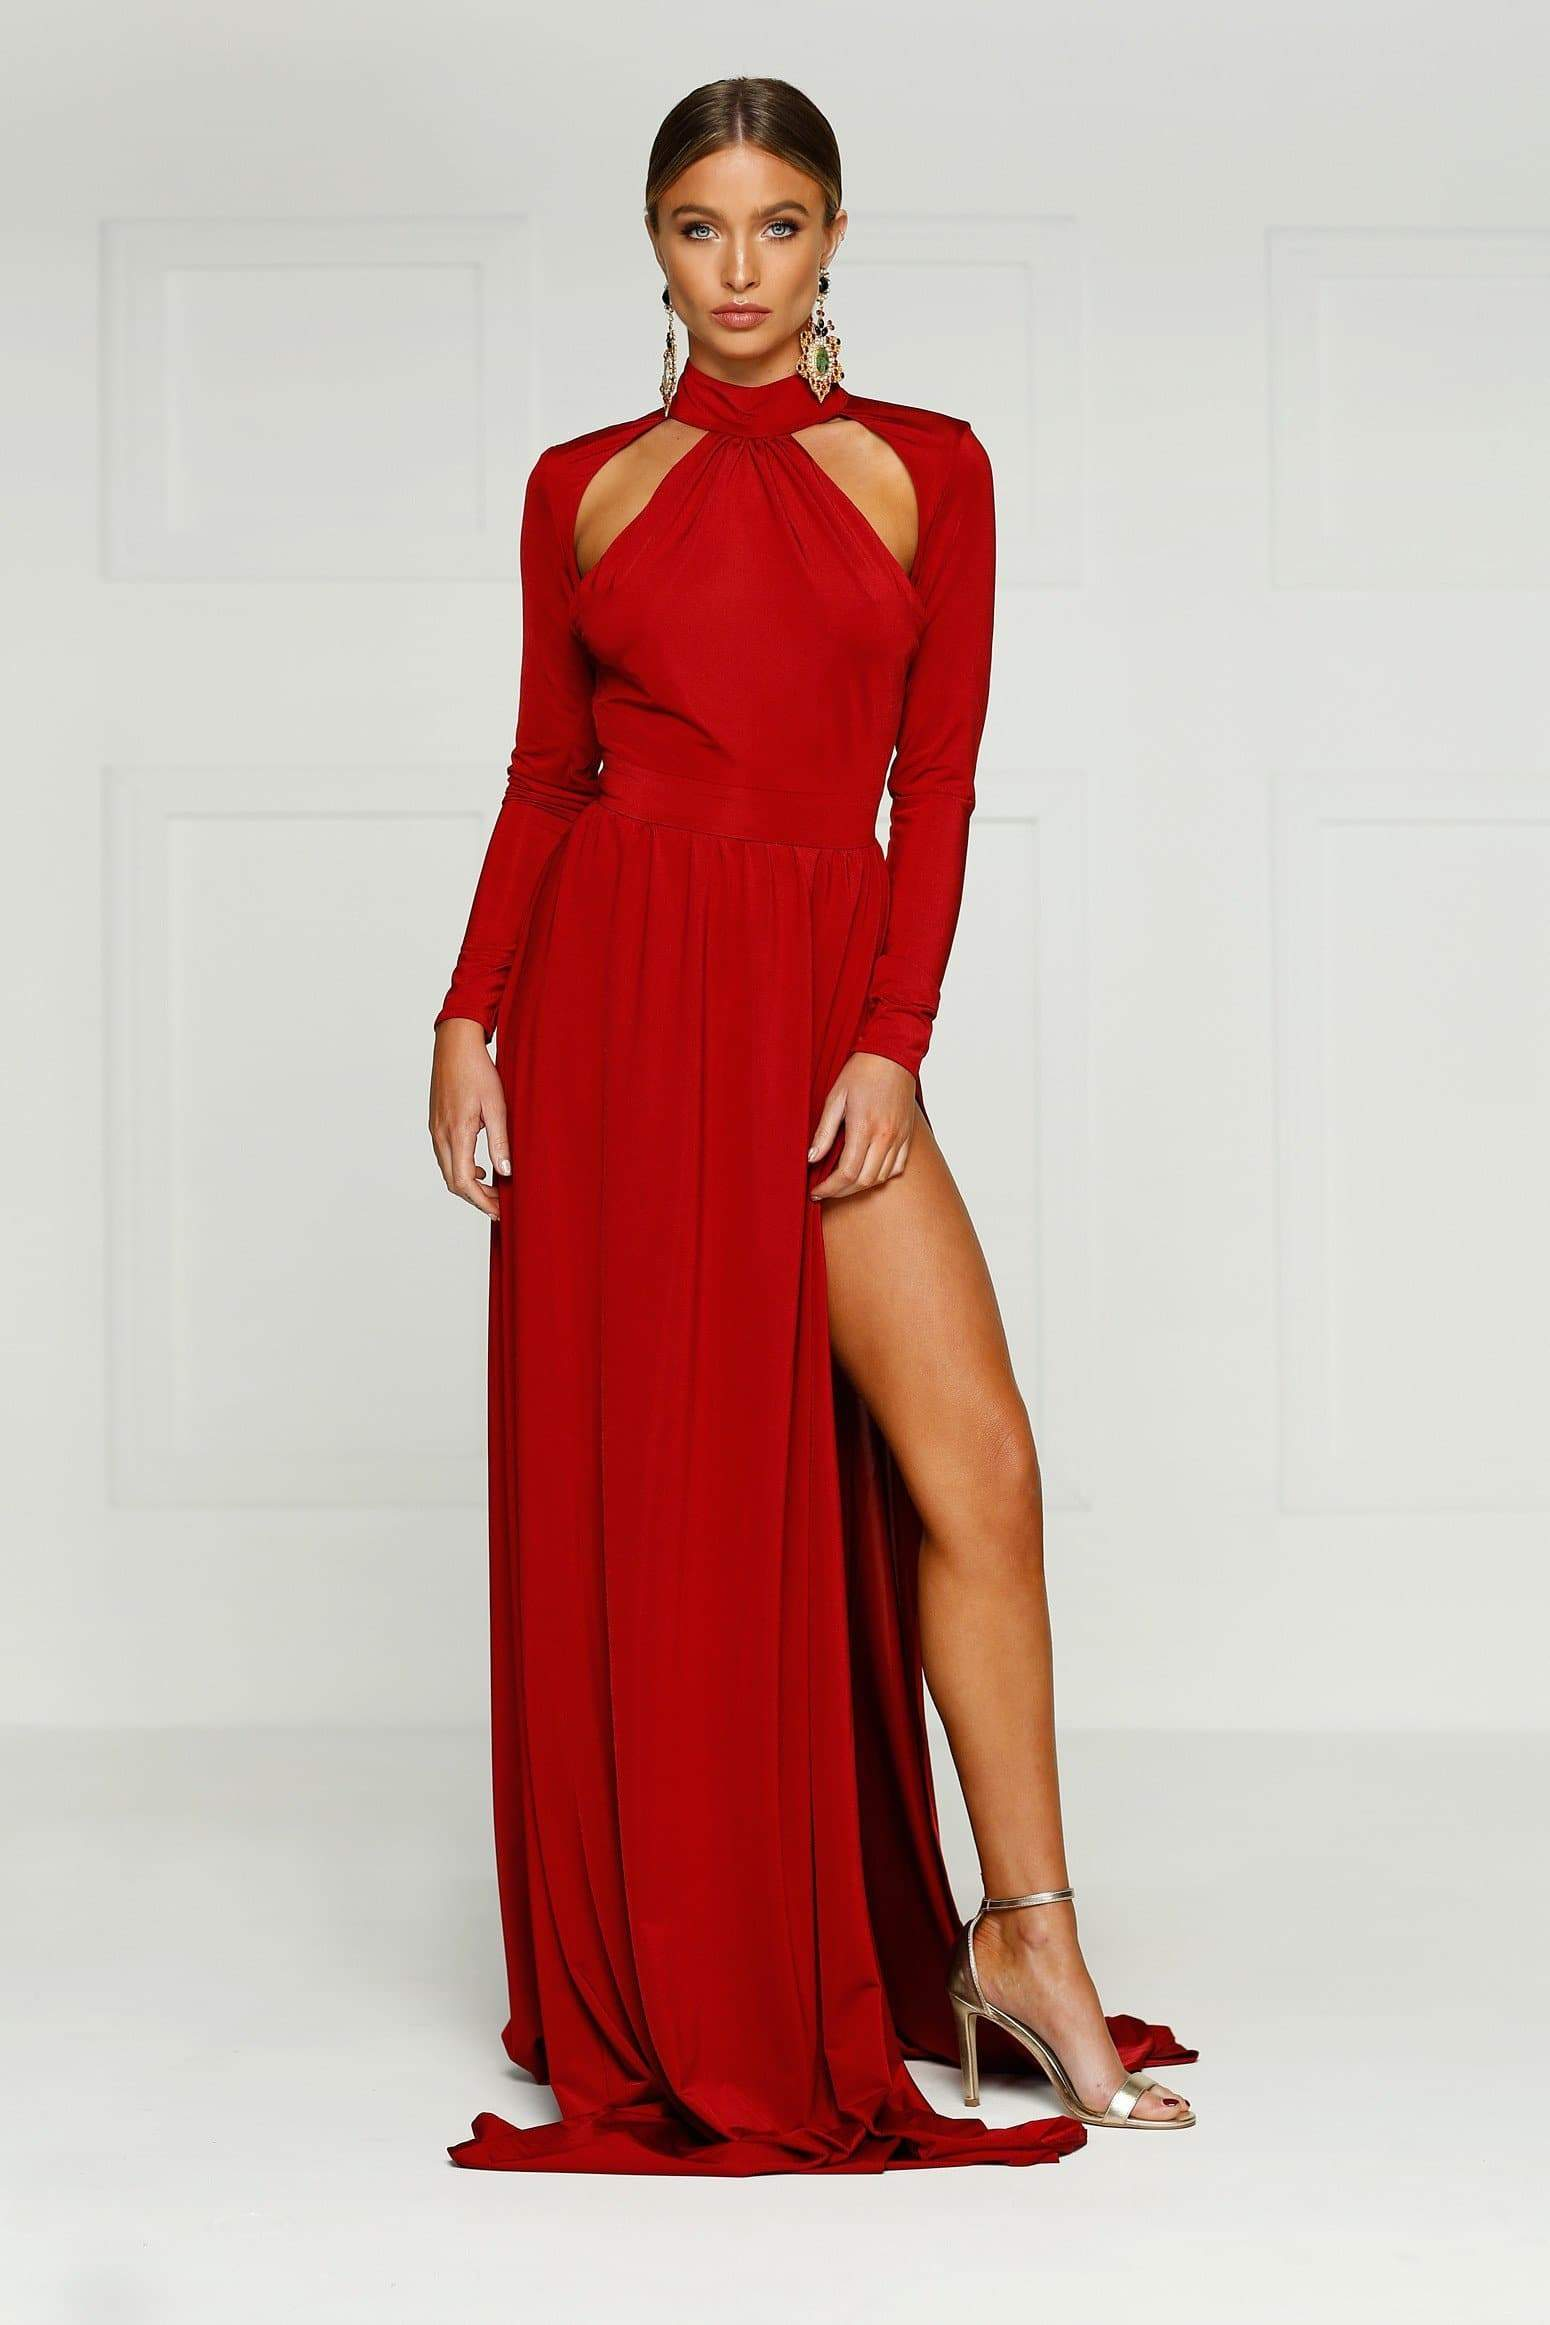 Liliya Gown - Red High Neck Dress with Thigh High Splits & Cut-Outs